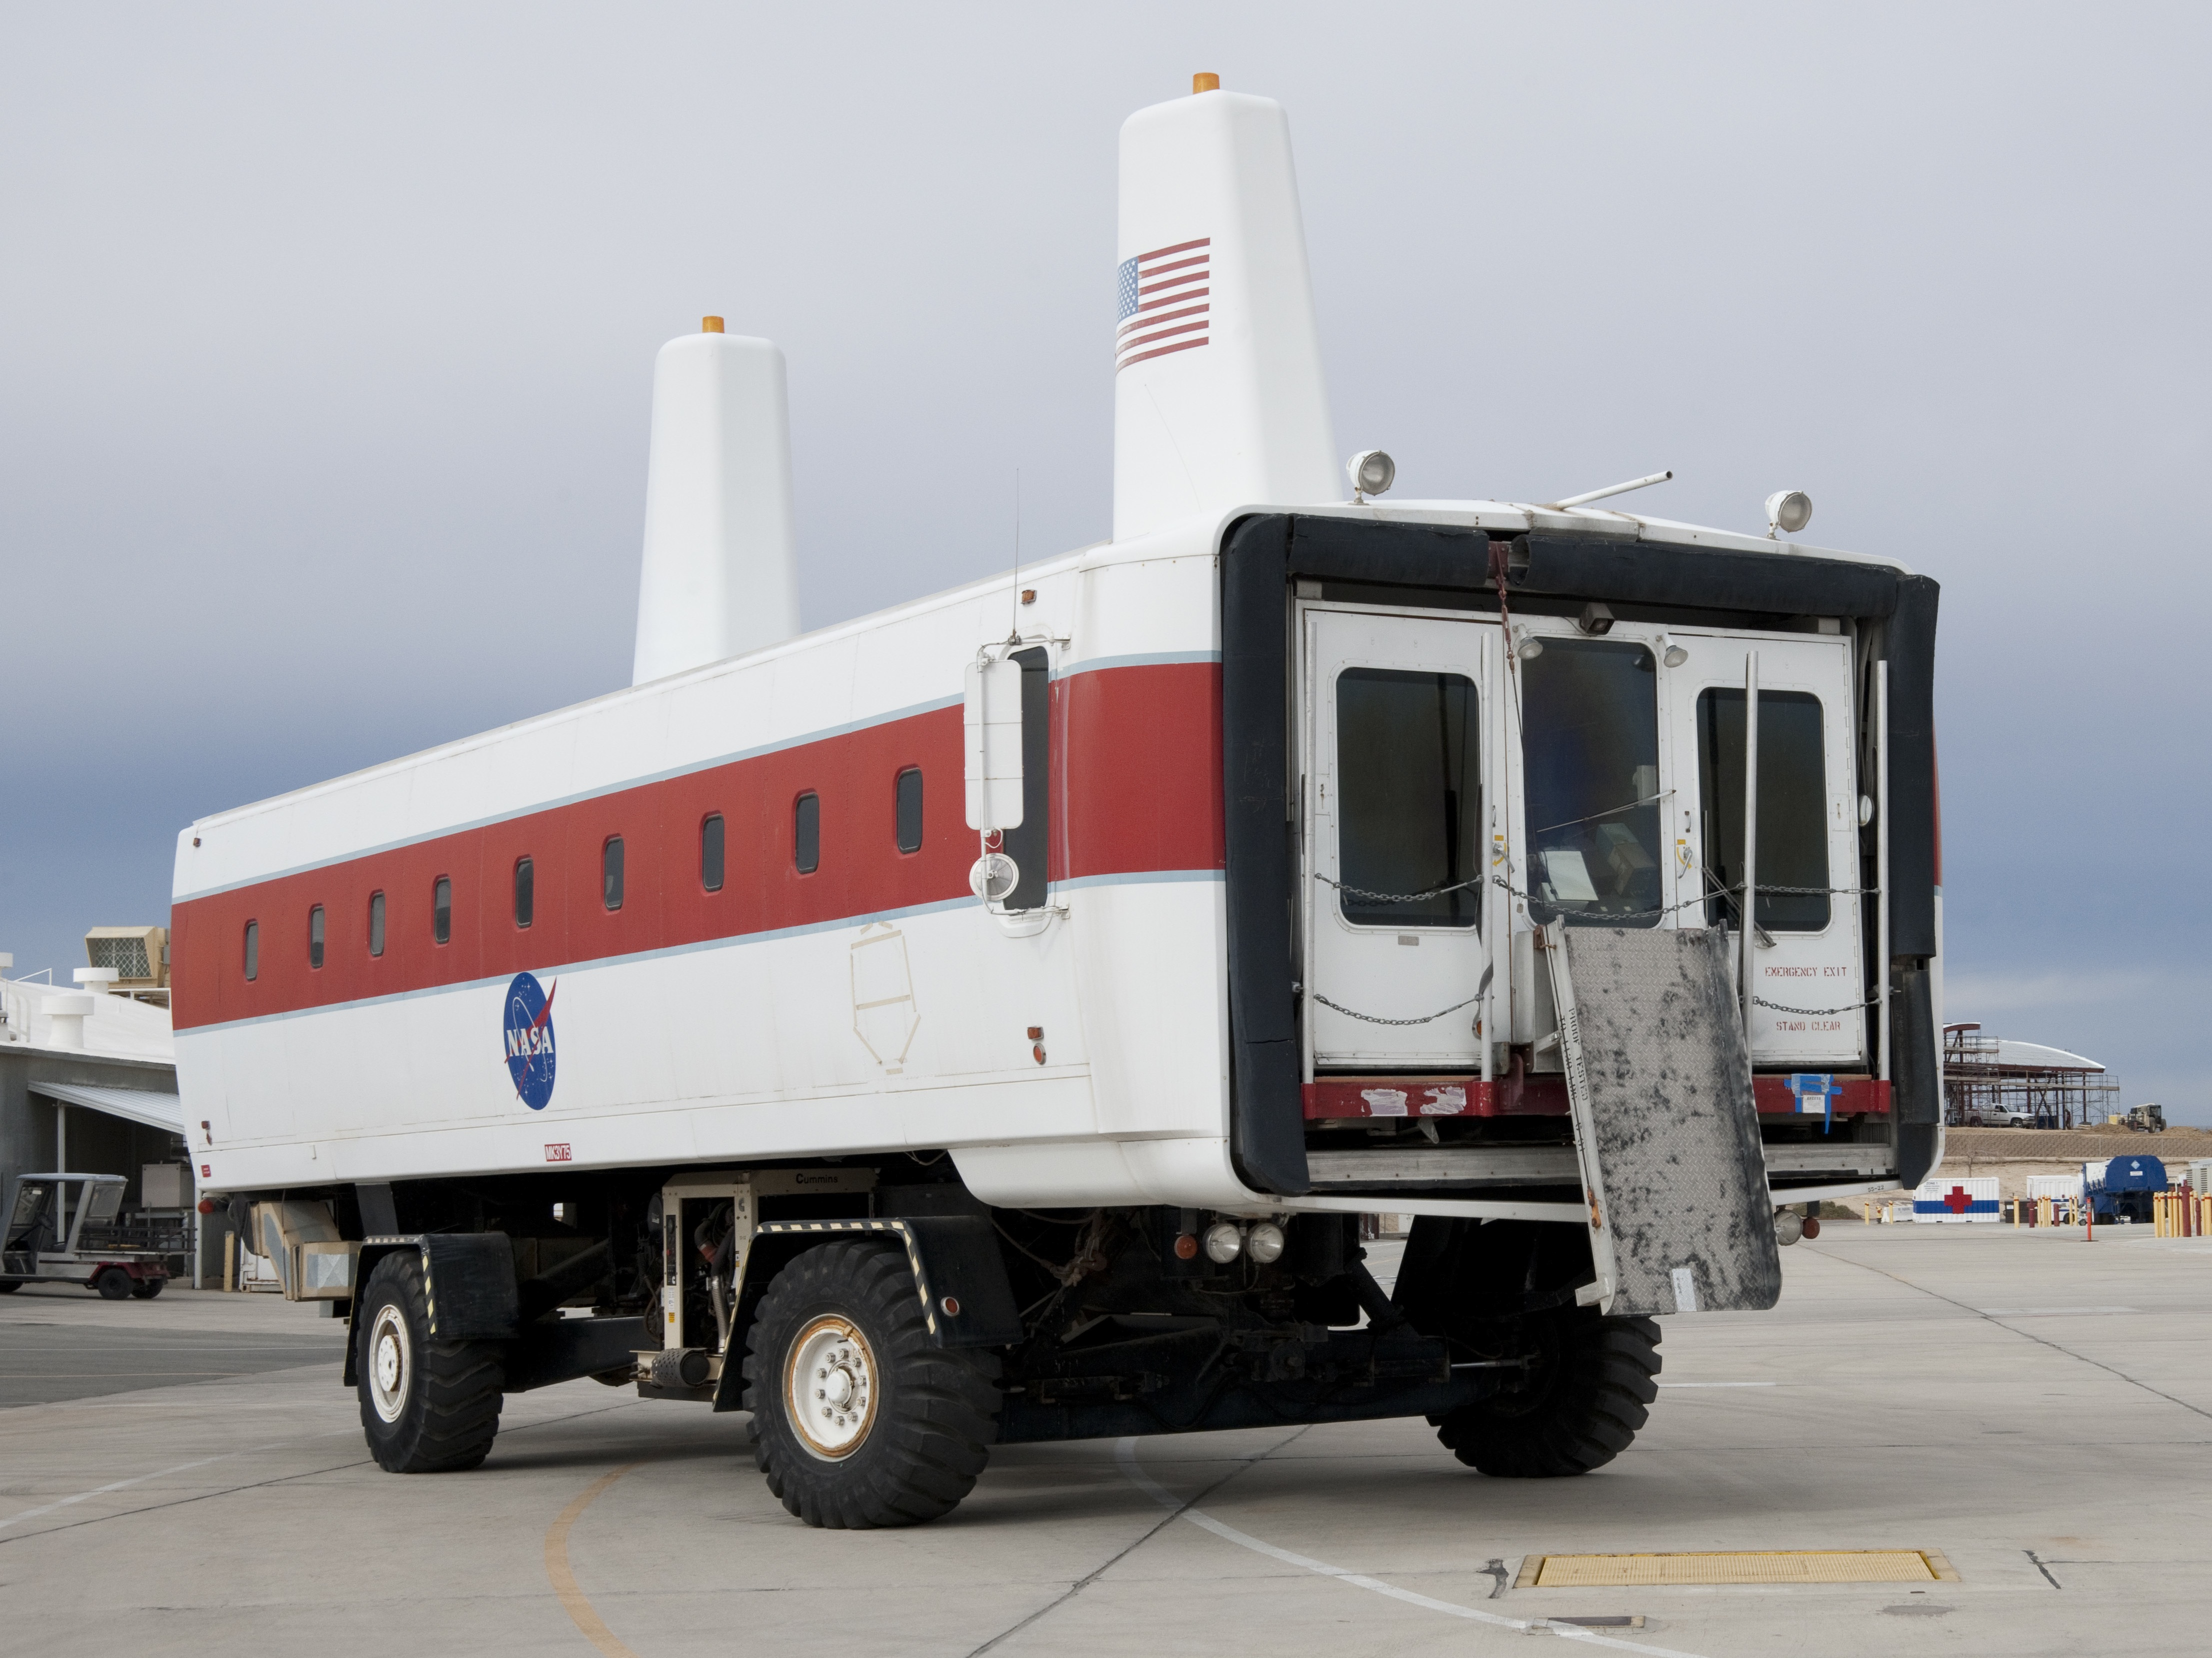 NASA Vehicle Names - Pics about space